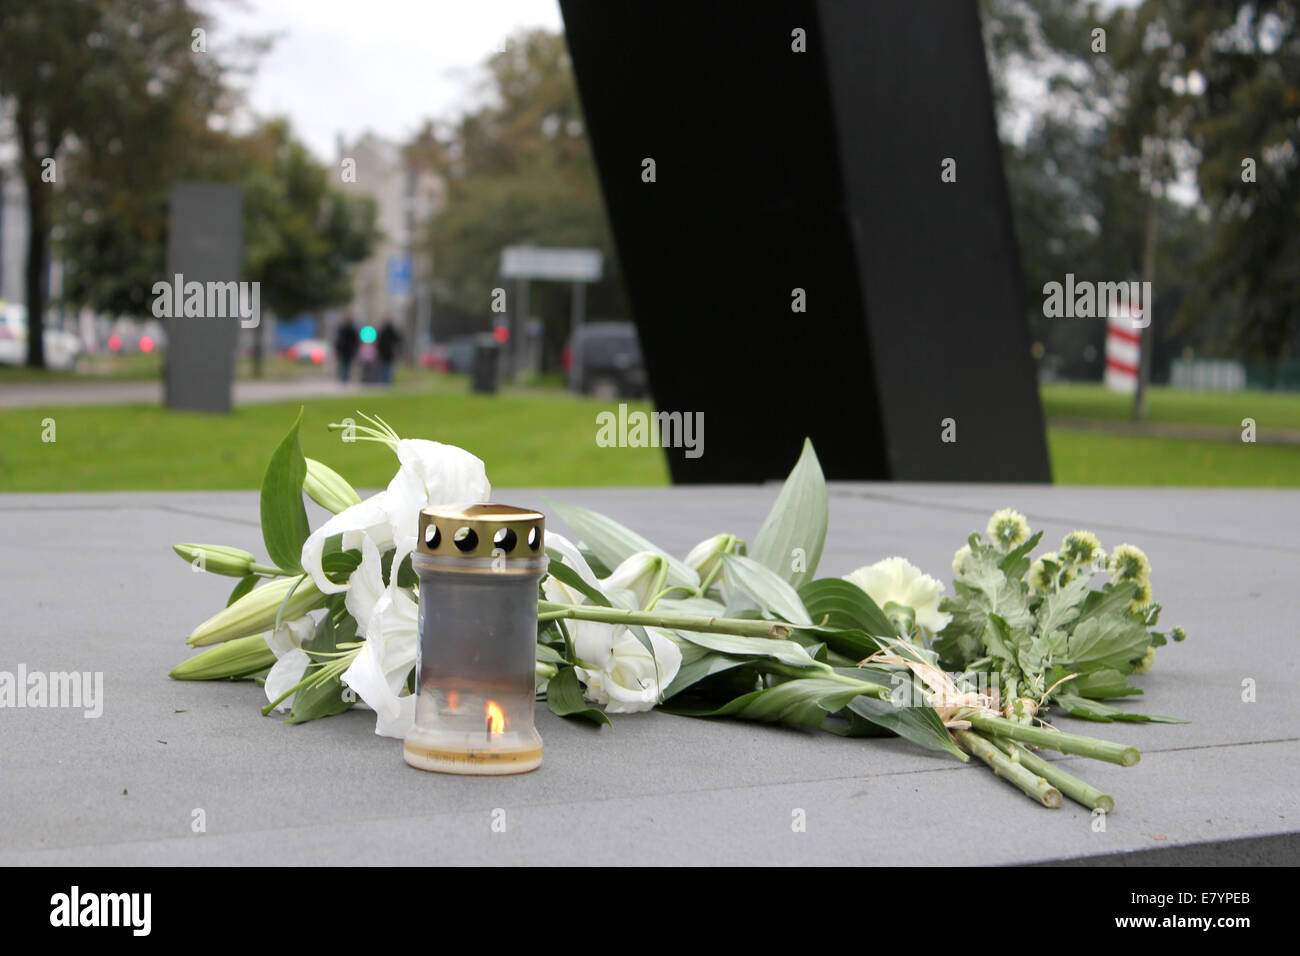 Tallinn, Estonia. 26th Sep, 2014. First candles have been lit at Memorial to the Estonia statue in Tallinn for 20 - Stock Image